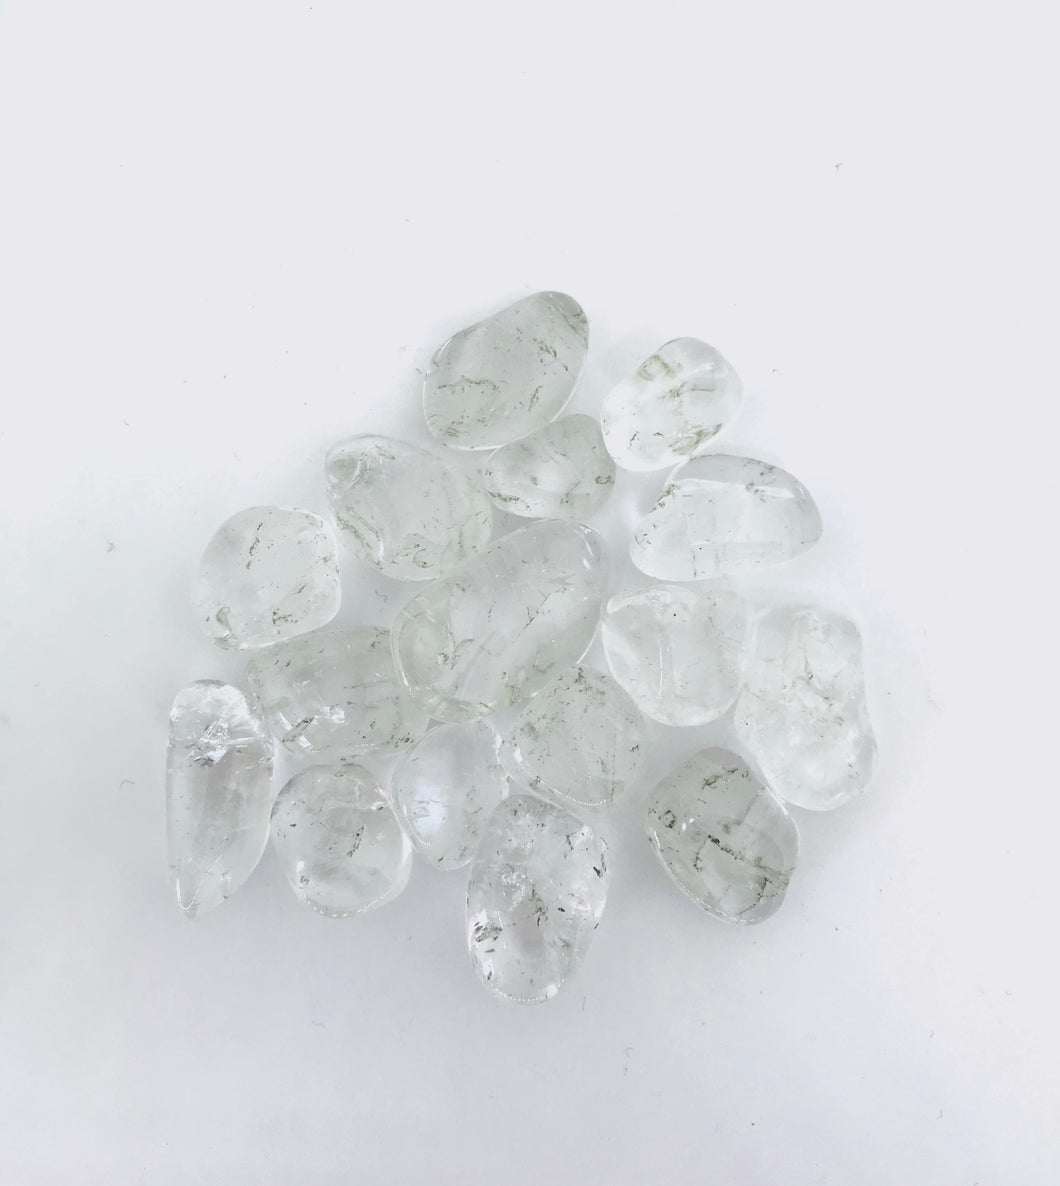 Clear Quartz Tumbled - Grade A